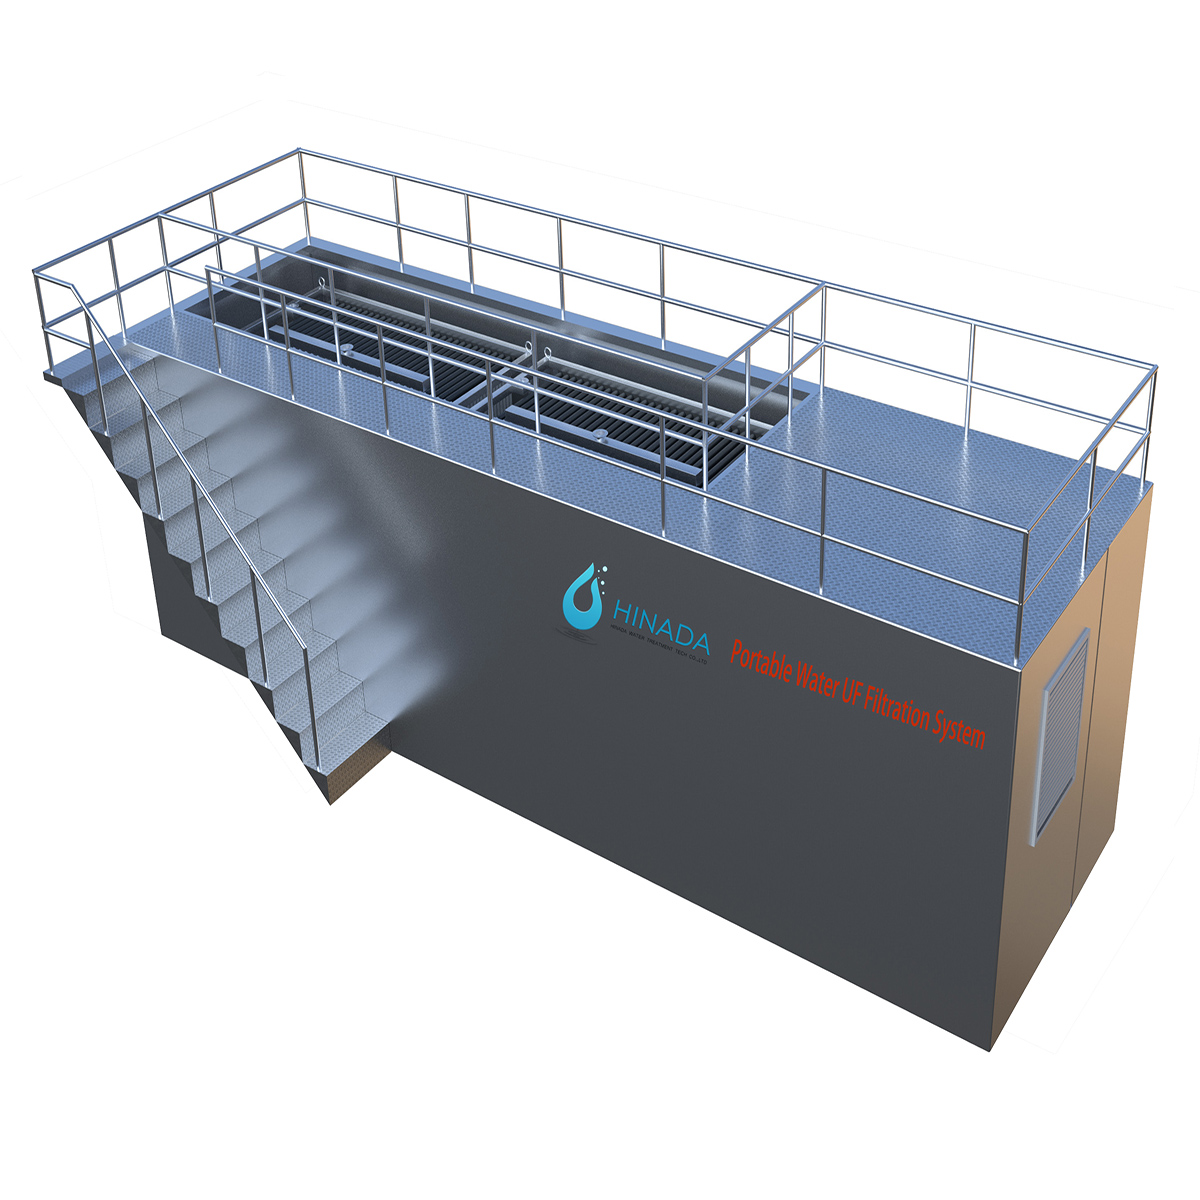 Uf Technology for Drinking Water System - Hinada